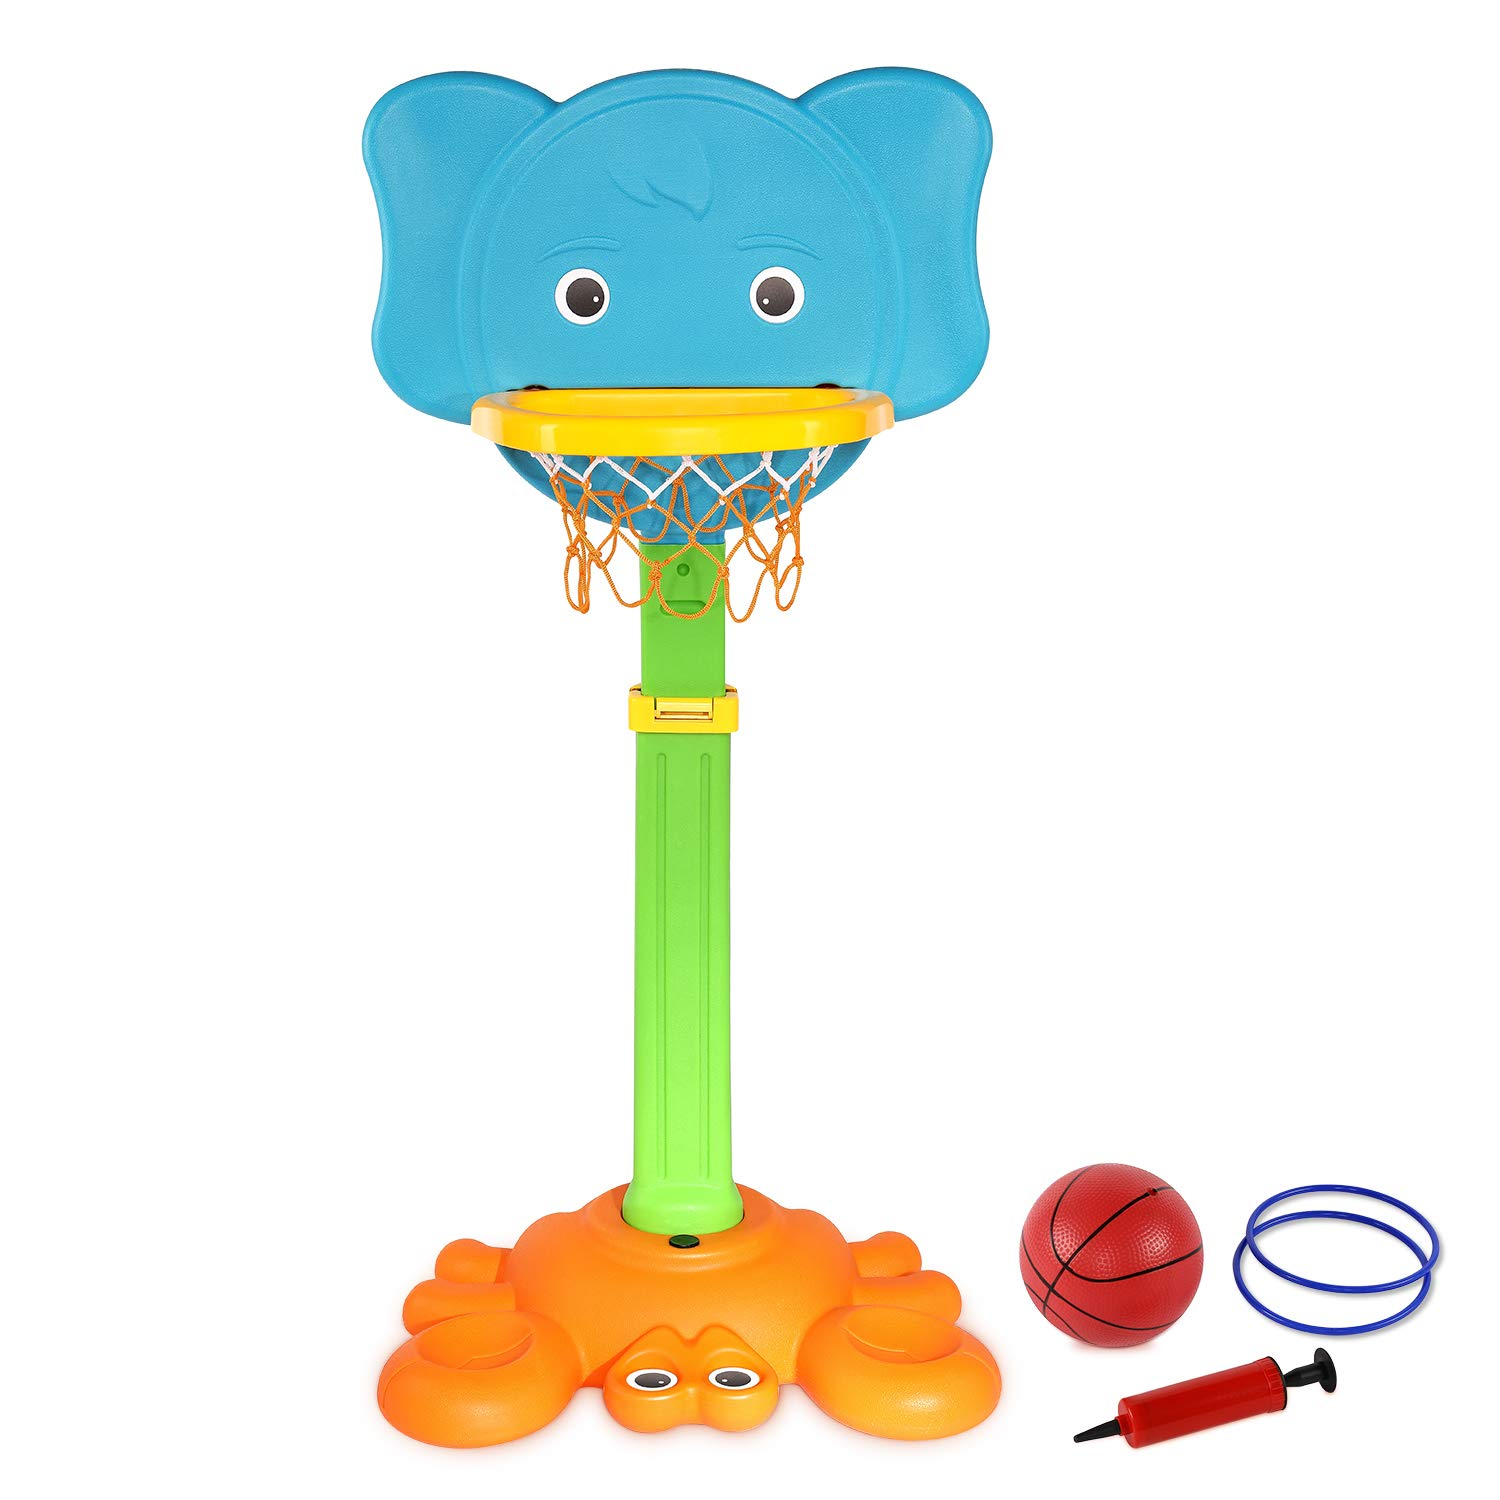 AuAg, 2 in 1 Basketball Hoop, Toddler Easy Score Basketball Hoop and Target Game Set, with Pump, Adjustable Height, Indoor-Outdoor, Stable, Durable, Colourful, Multifuctional, Gift for Boys &Girls by AuAg